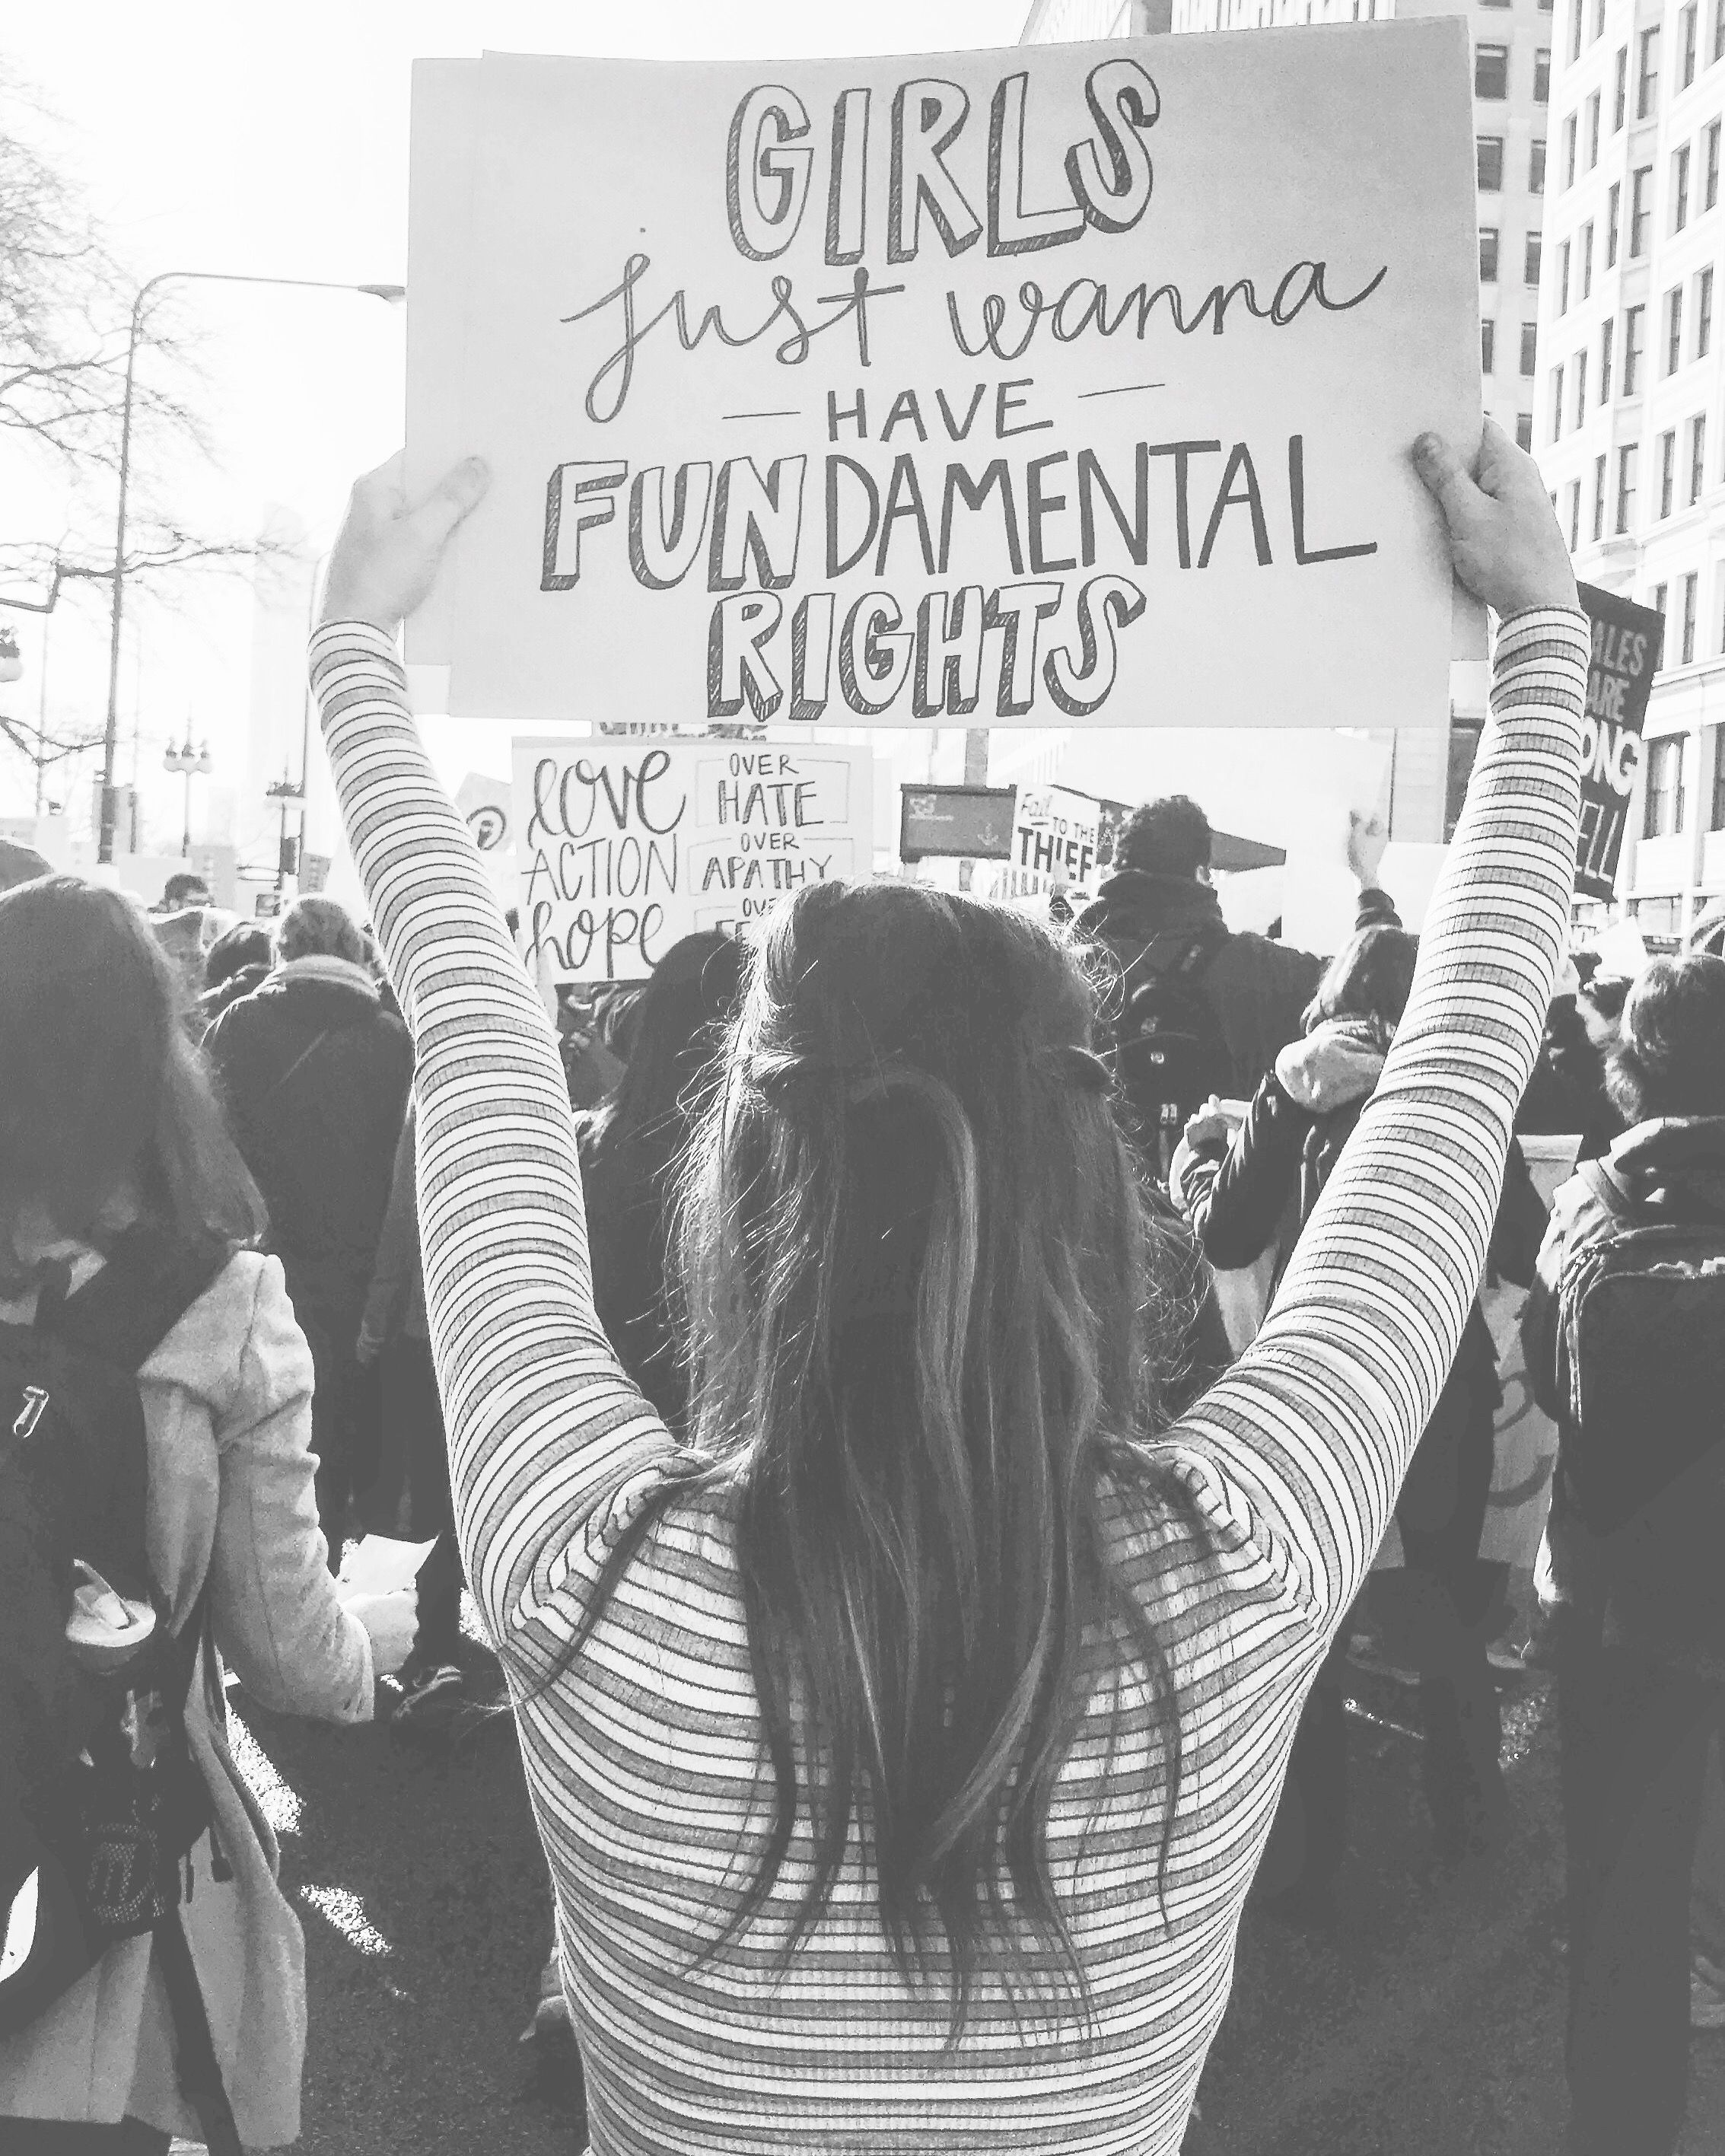 7778f3d854f girls just want to have fundamental rights Women s march Girl power Feminism  Feminist